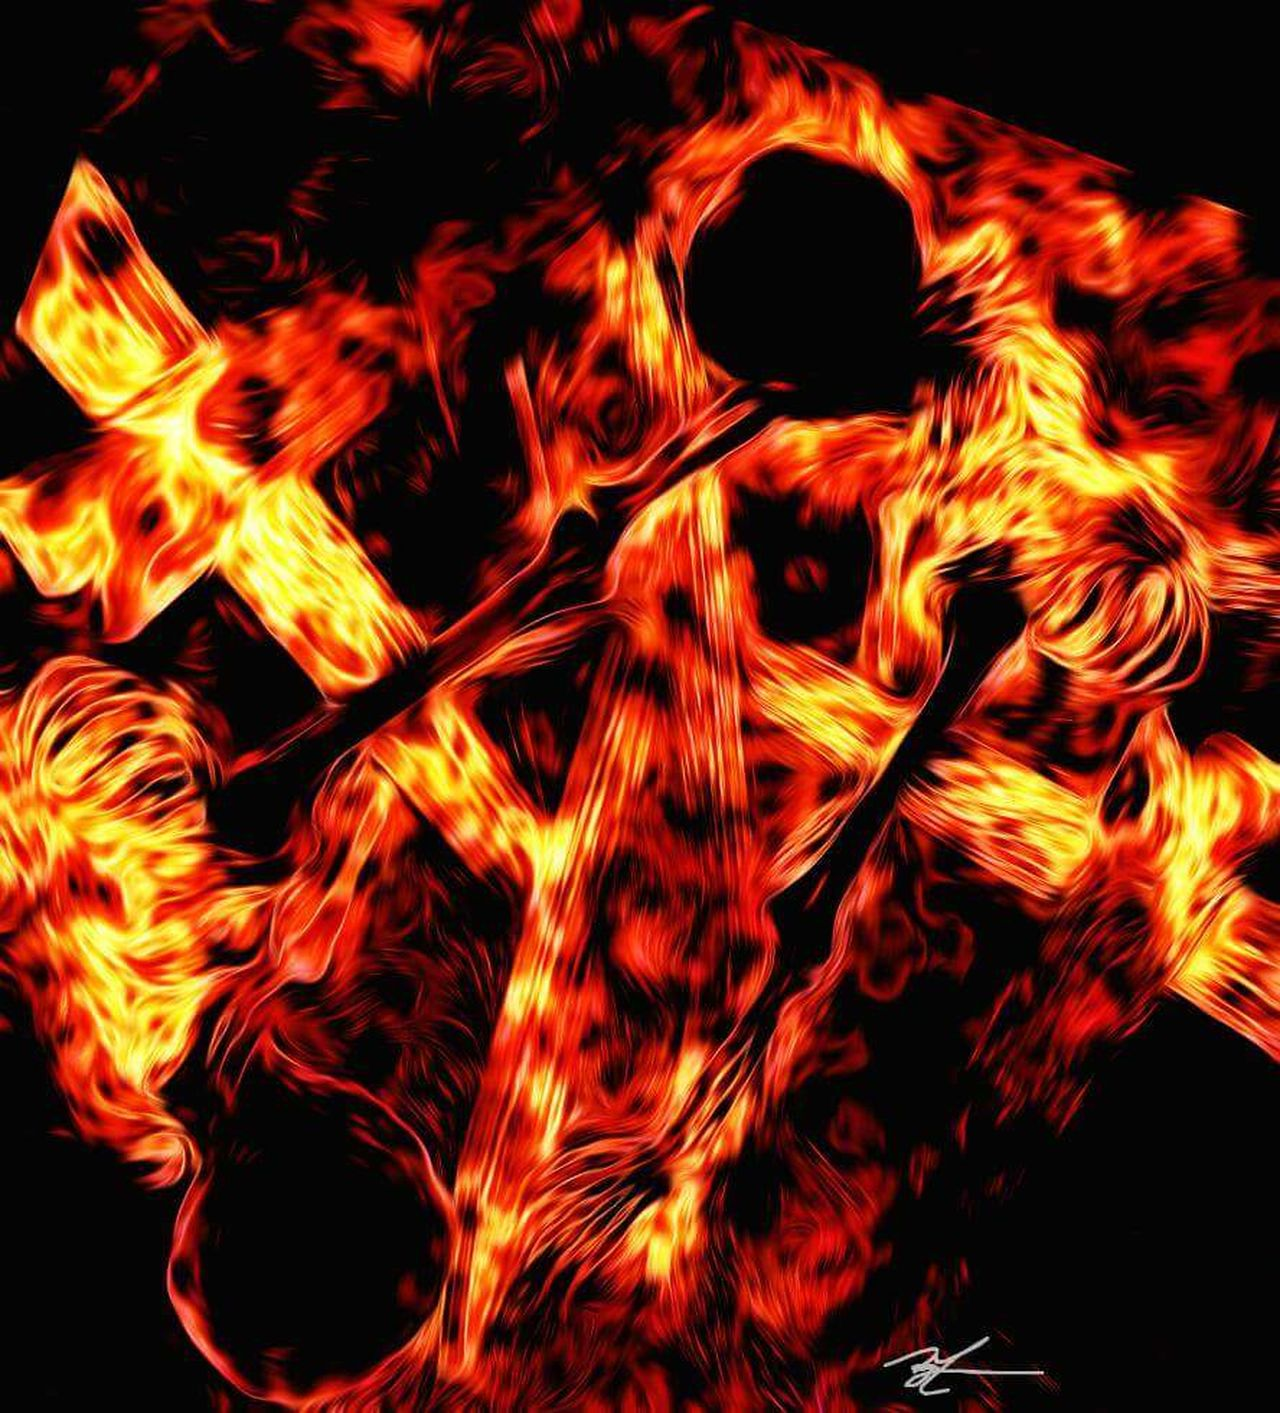 Red Flame Heat - Temperature Black Background Burning No People My Artwork Digital Art Abstract Art